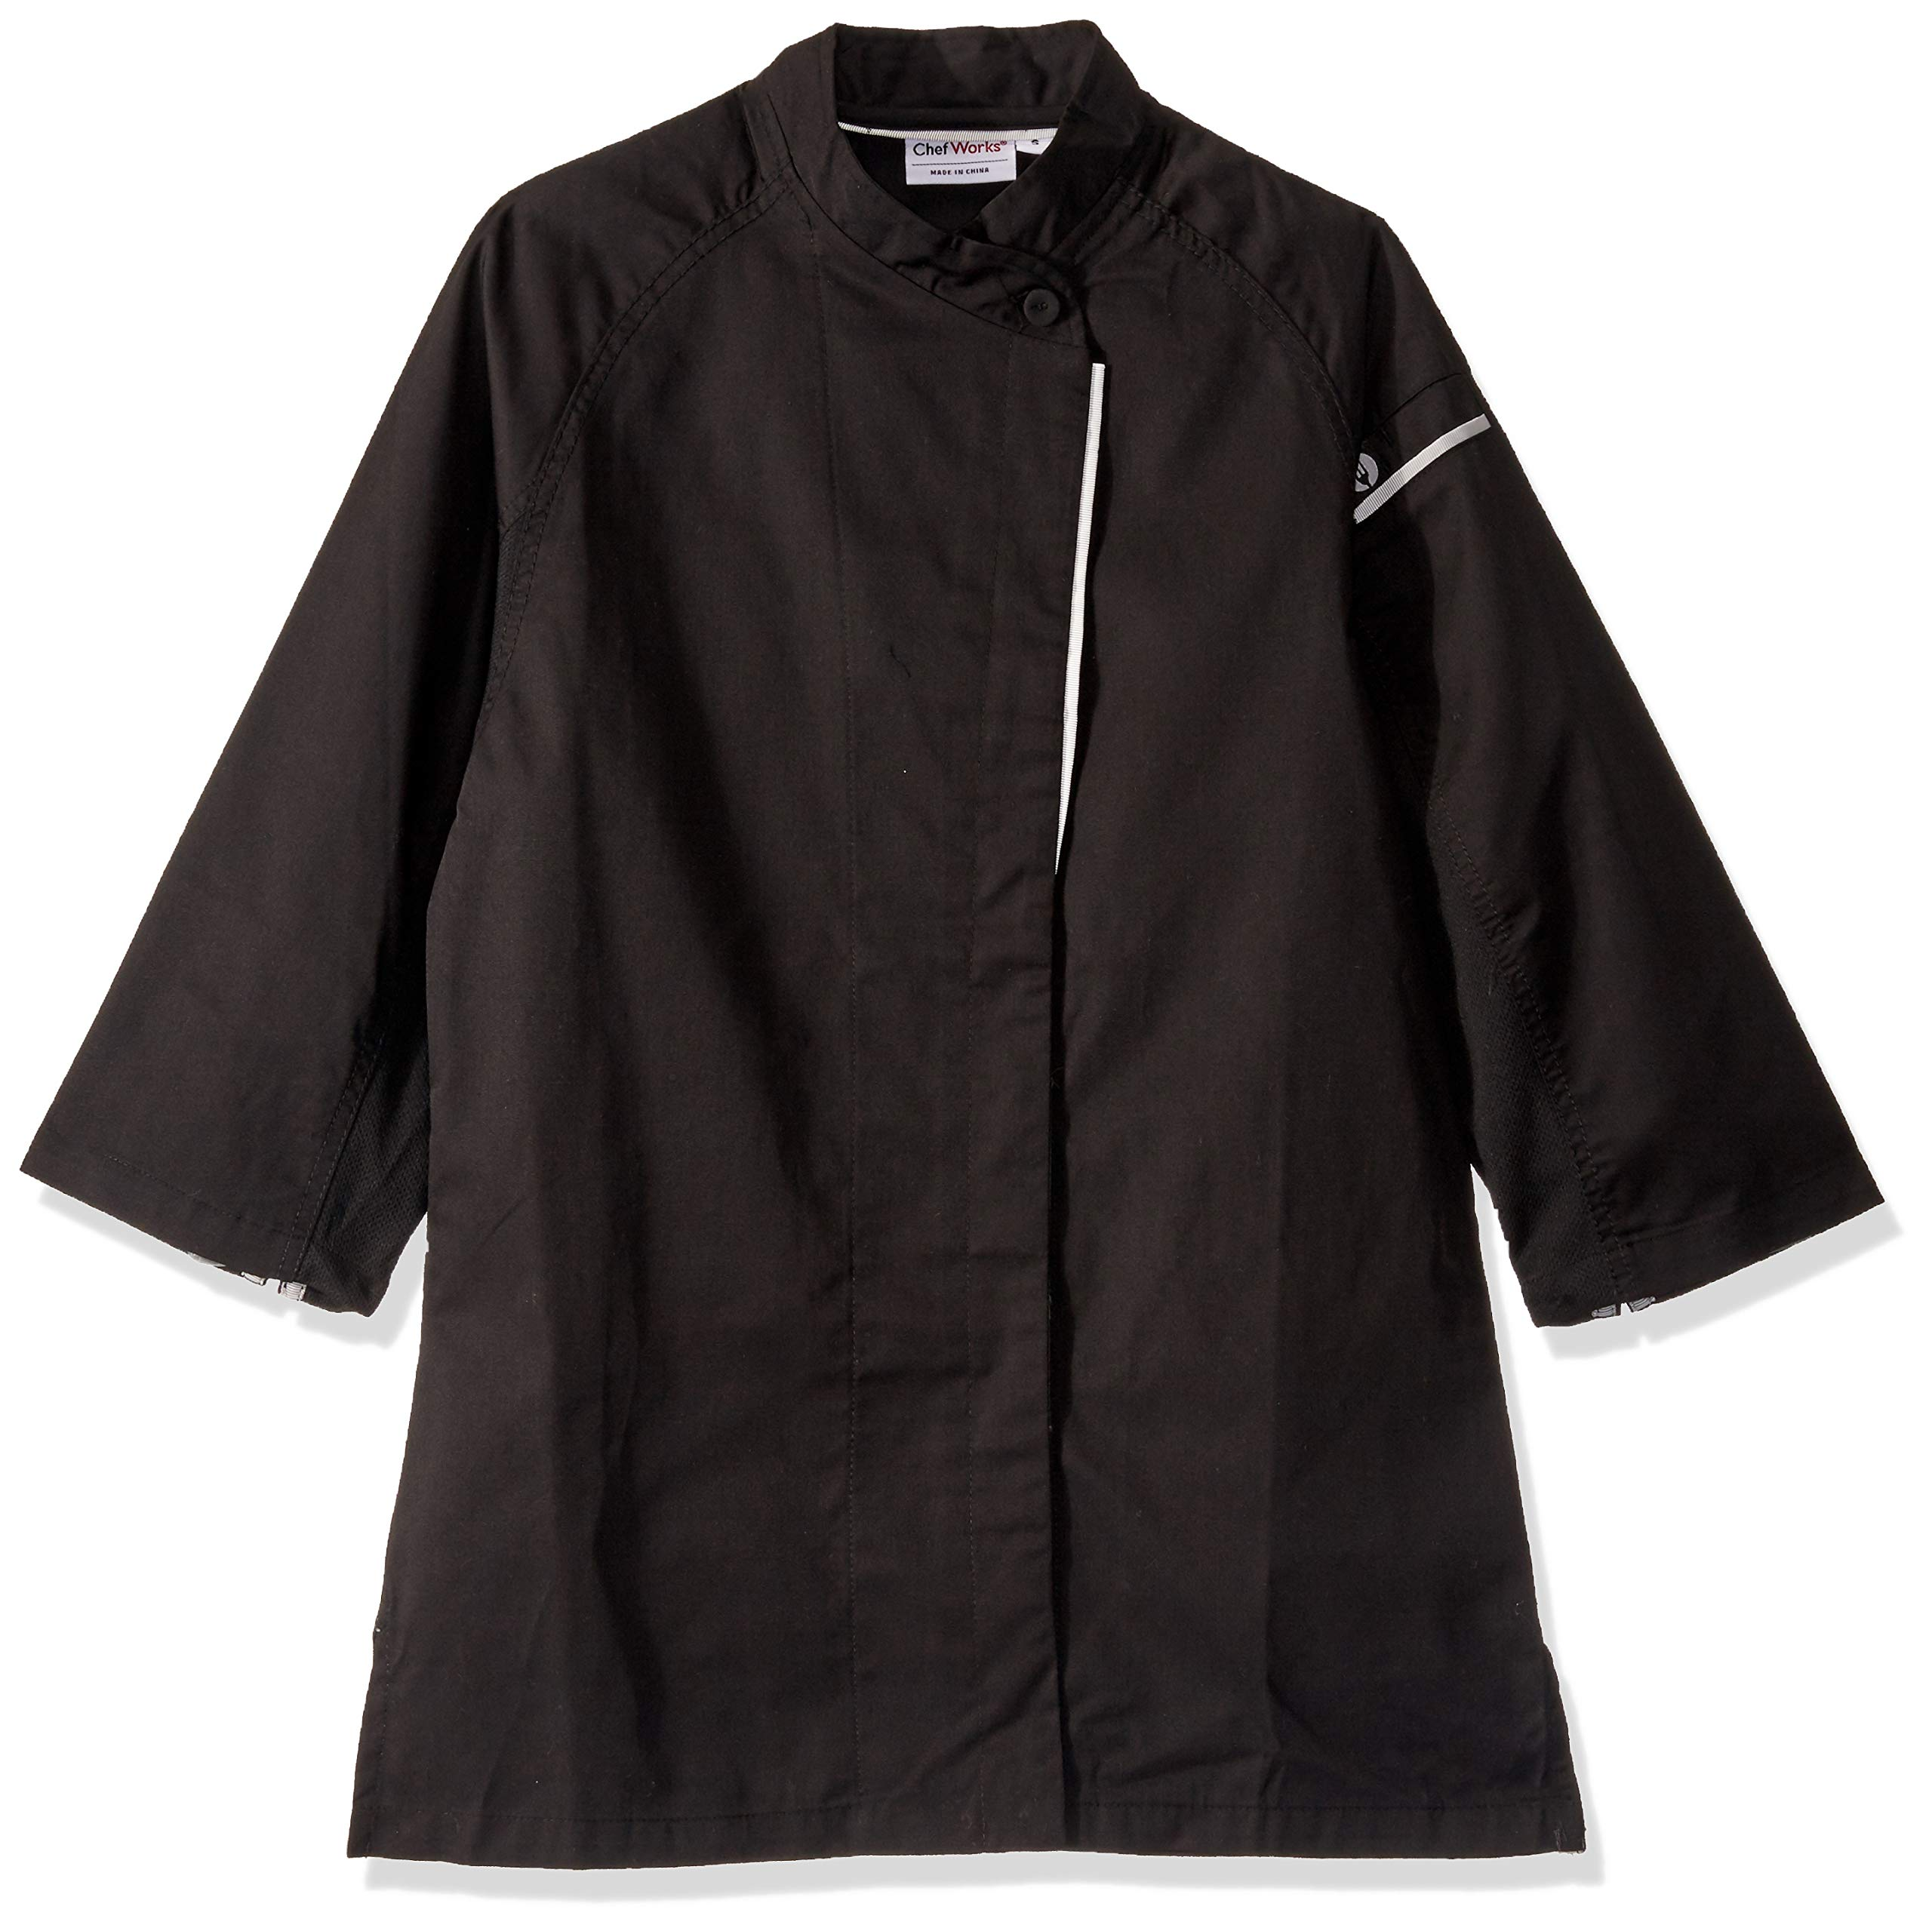 Chef Works Women's Verona V-Series Chef Coat, Black, Large by Chef Works